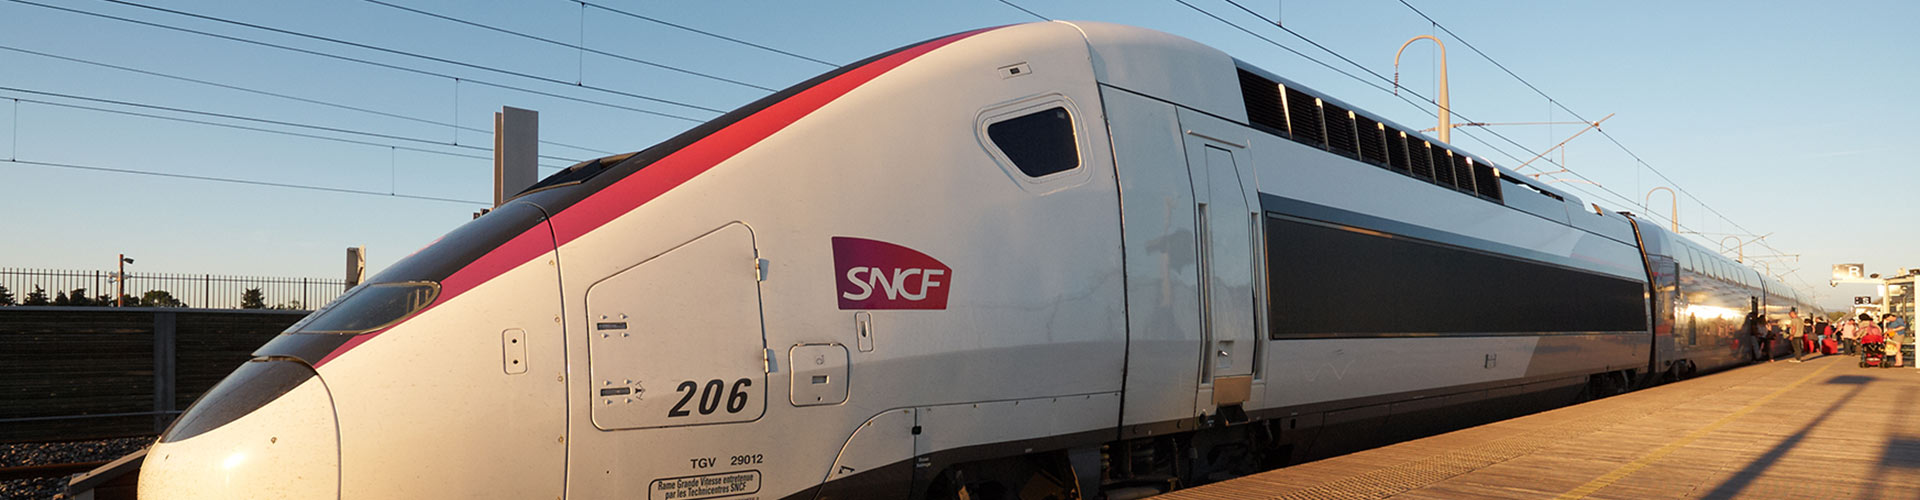 SNCF Employee Advocacy Program